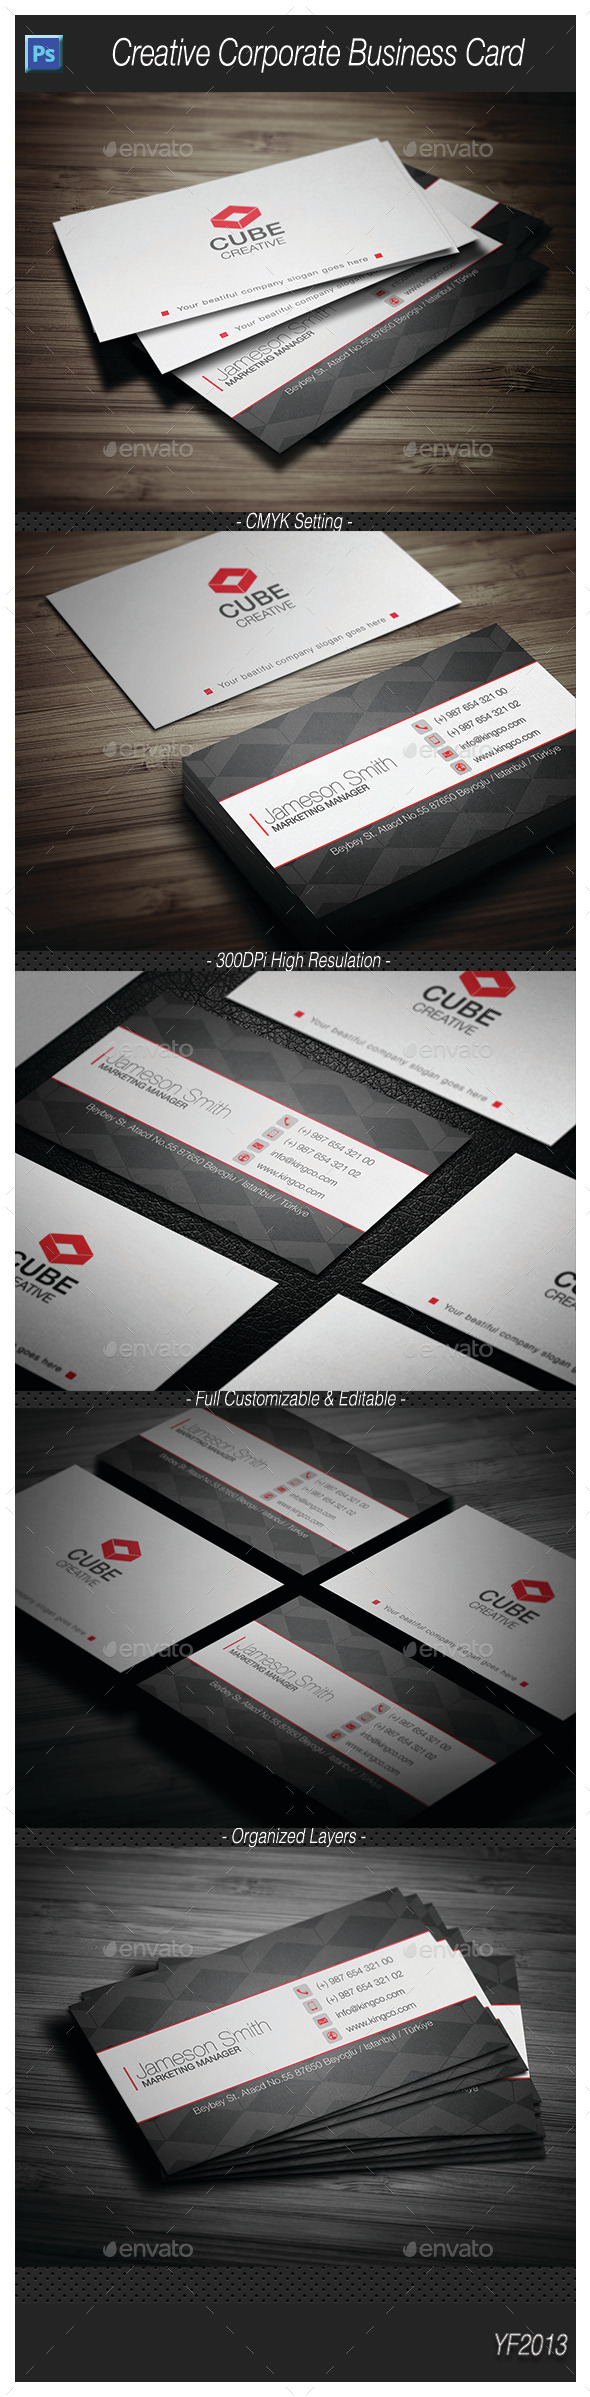 GraphicRiver Creative Corporate Business Card 1 10046243